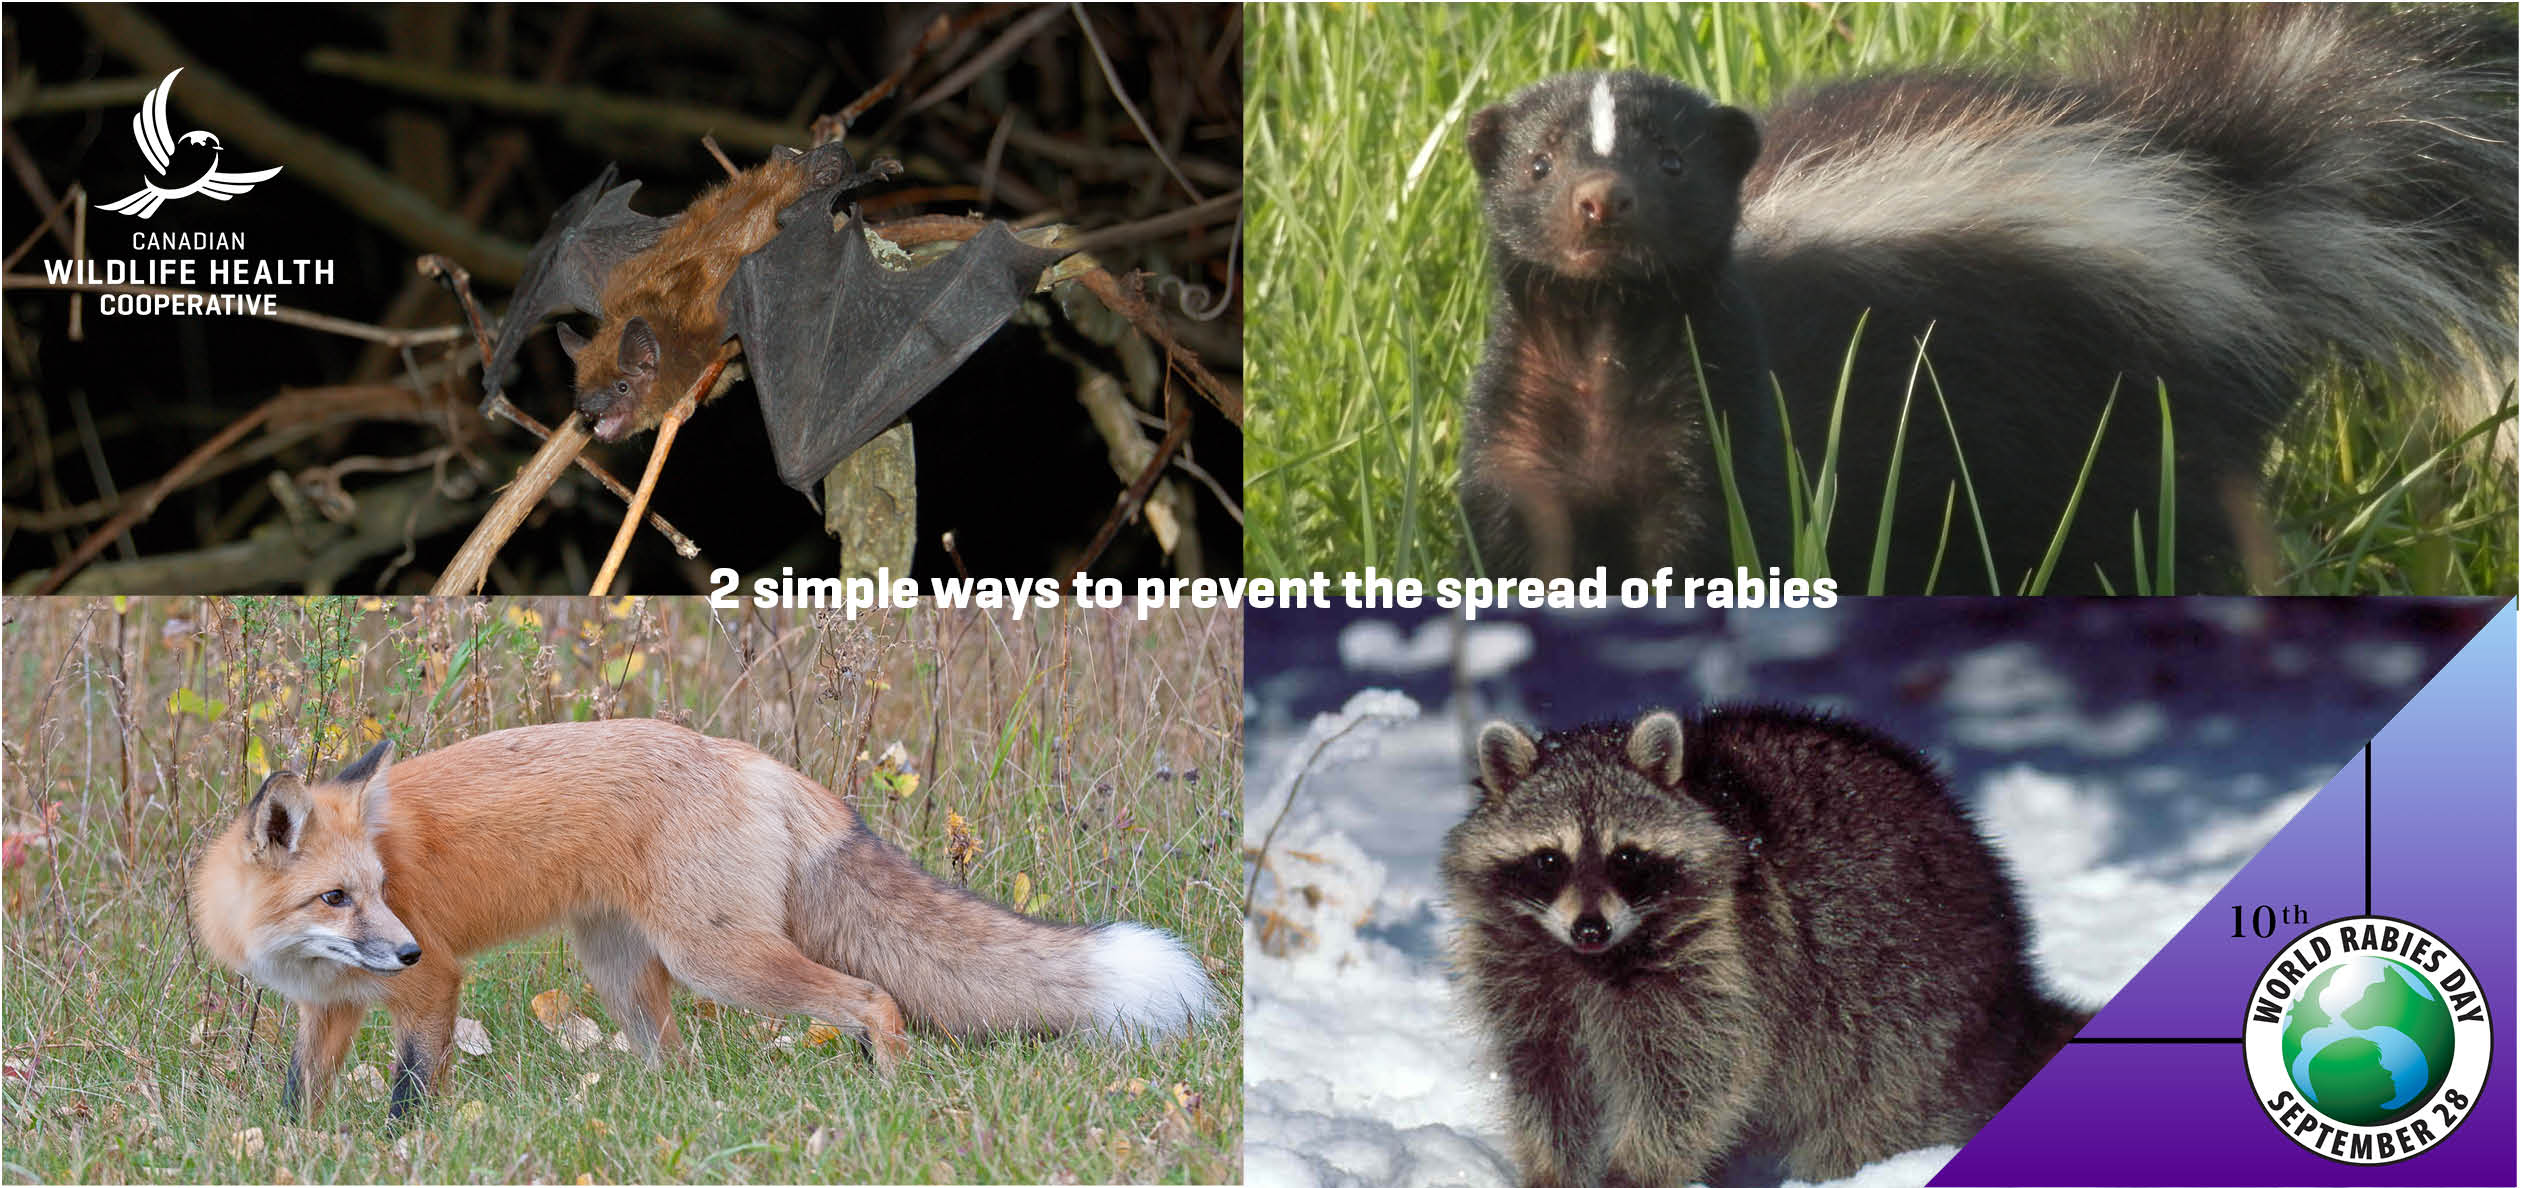 2 simple ways to prevent the spread of rabies healthy wildlife